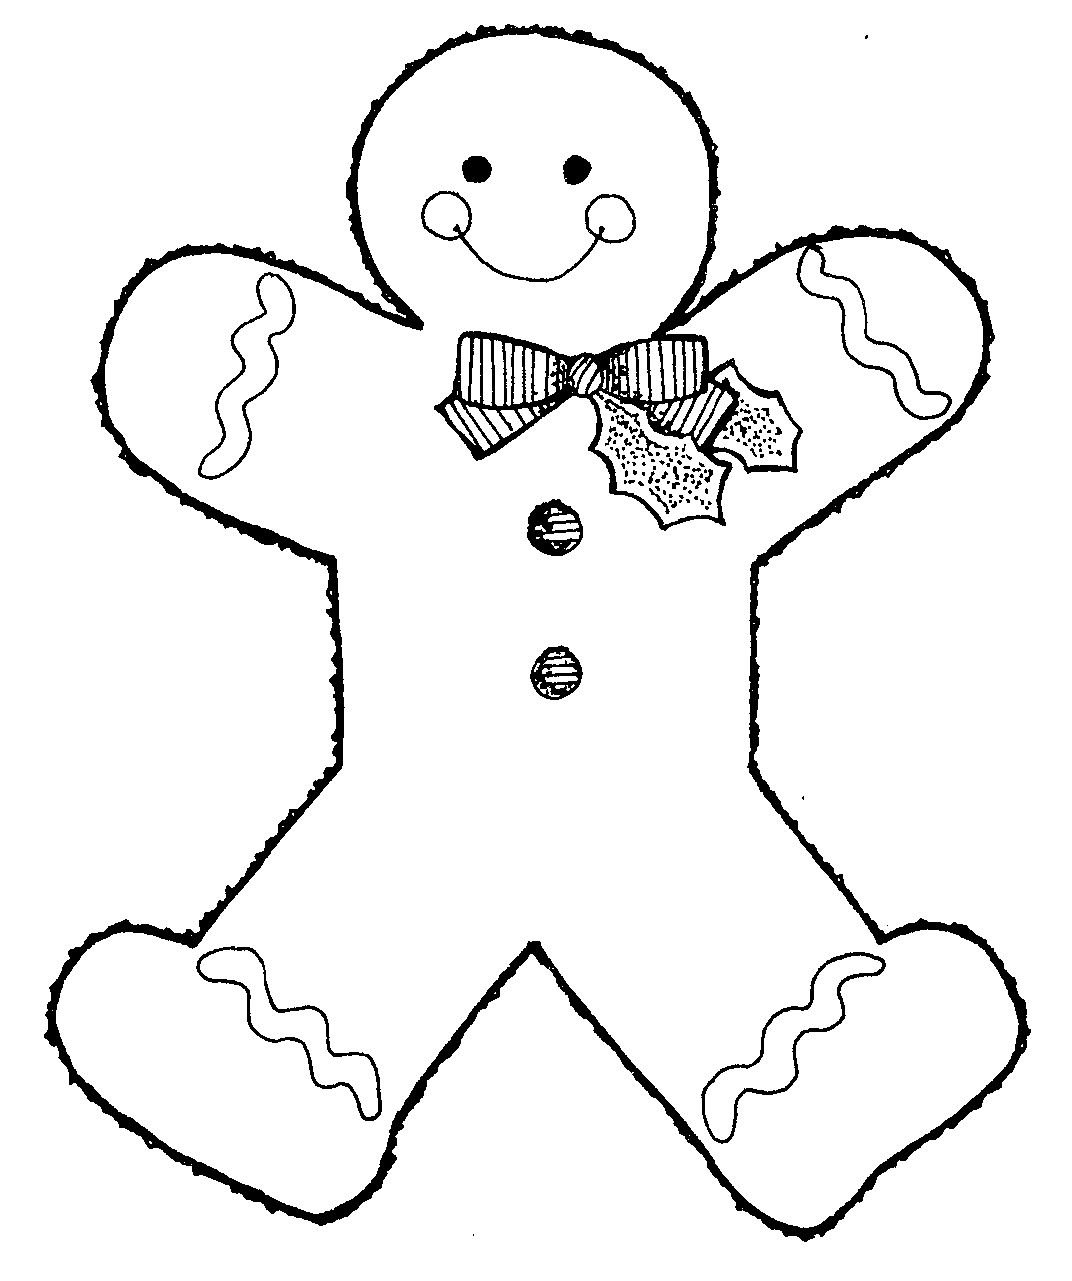 gingerbread man coloring pictures | Kerst | Pinterest ...